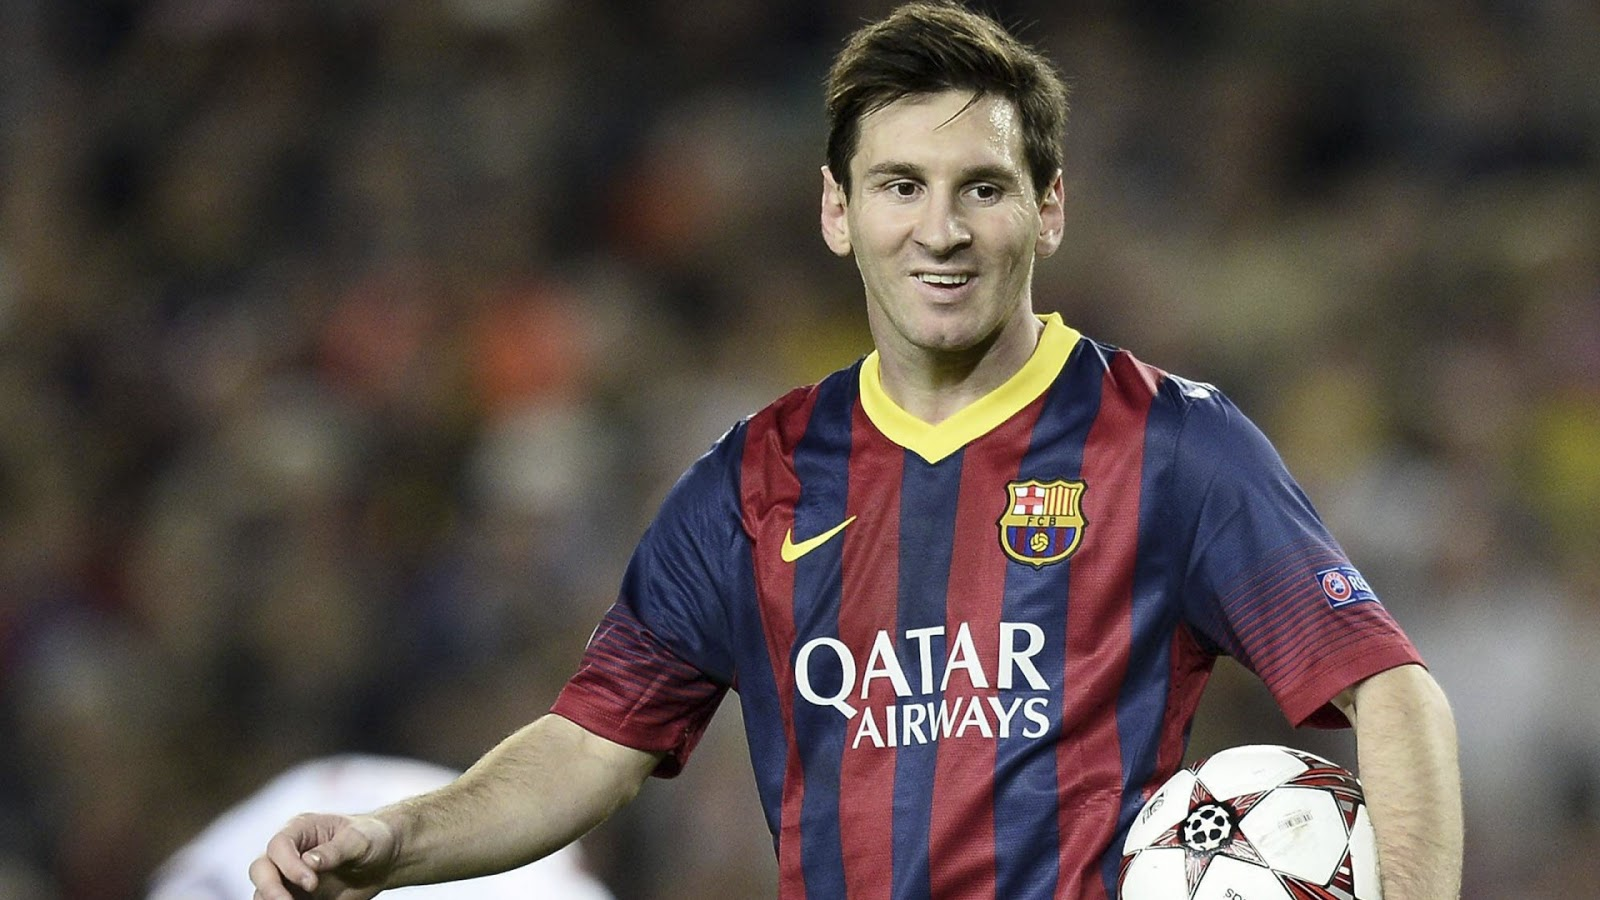 Lionel Messi Full Size Hd: Lionel Messi Full HD Wallpapers Backgrounds 1920 1080